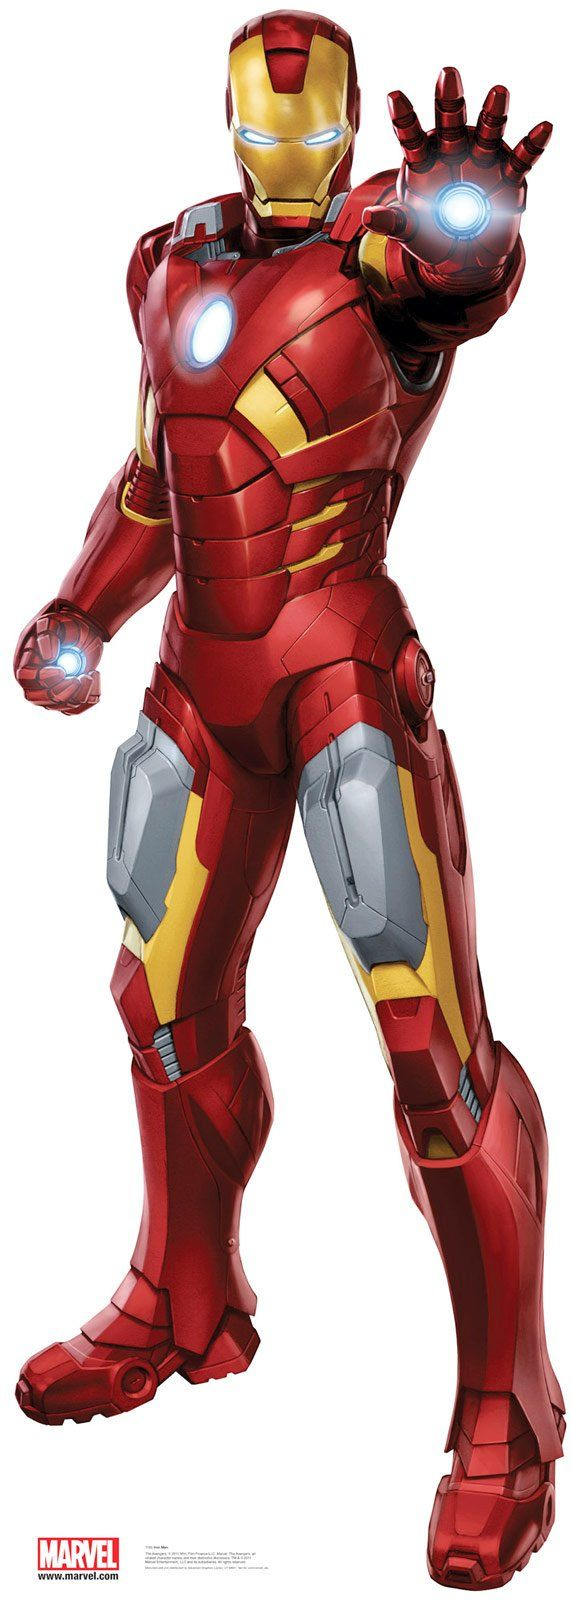 "Iron Man 6'4"" cardboard standup $39.99 from Birthday Express. Great photo opp for thank you cards!"